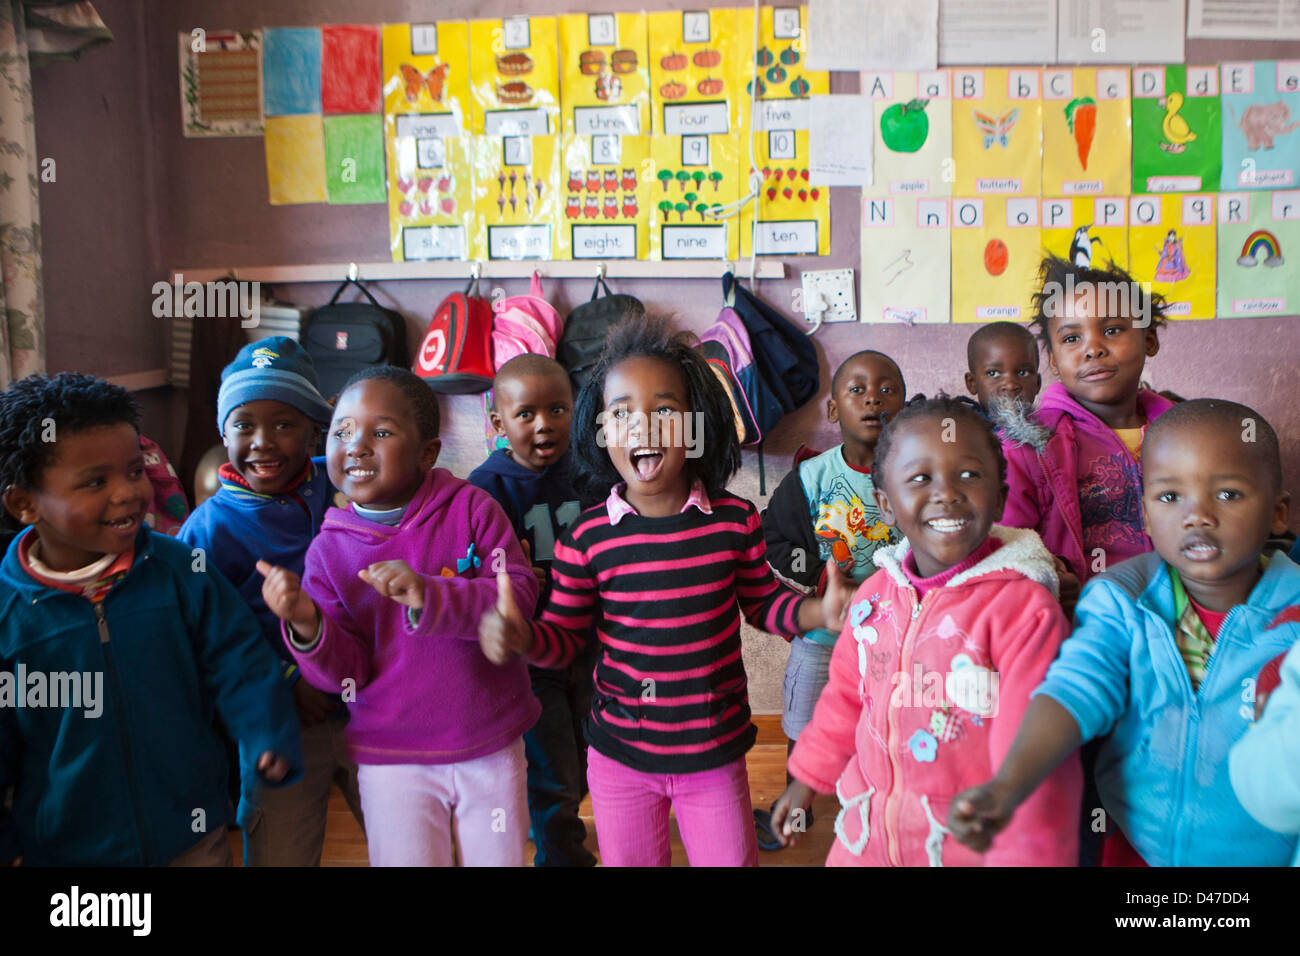 Young South African Children Dance And Sing In An Early